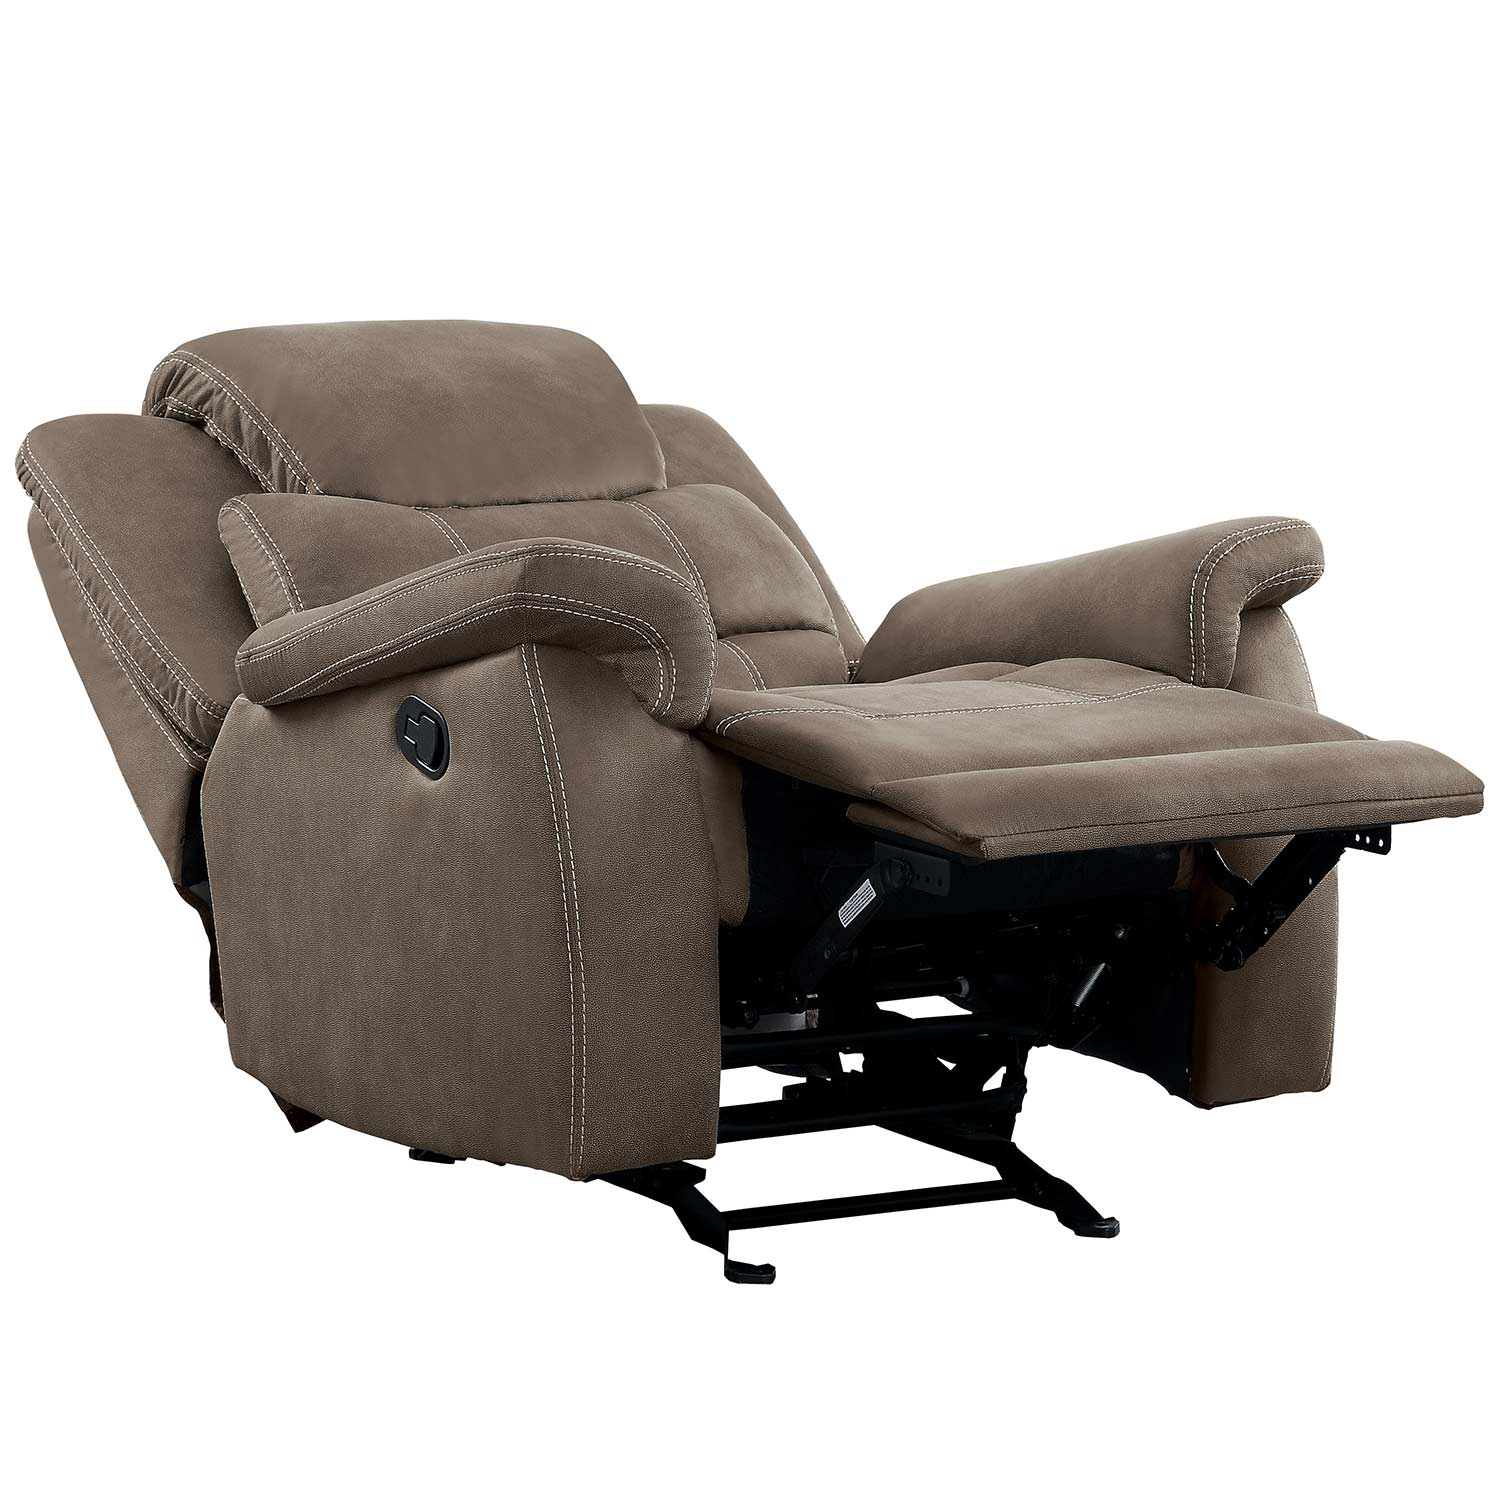 Homelegance Shola Glider Reclining Chair - Brown